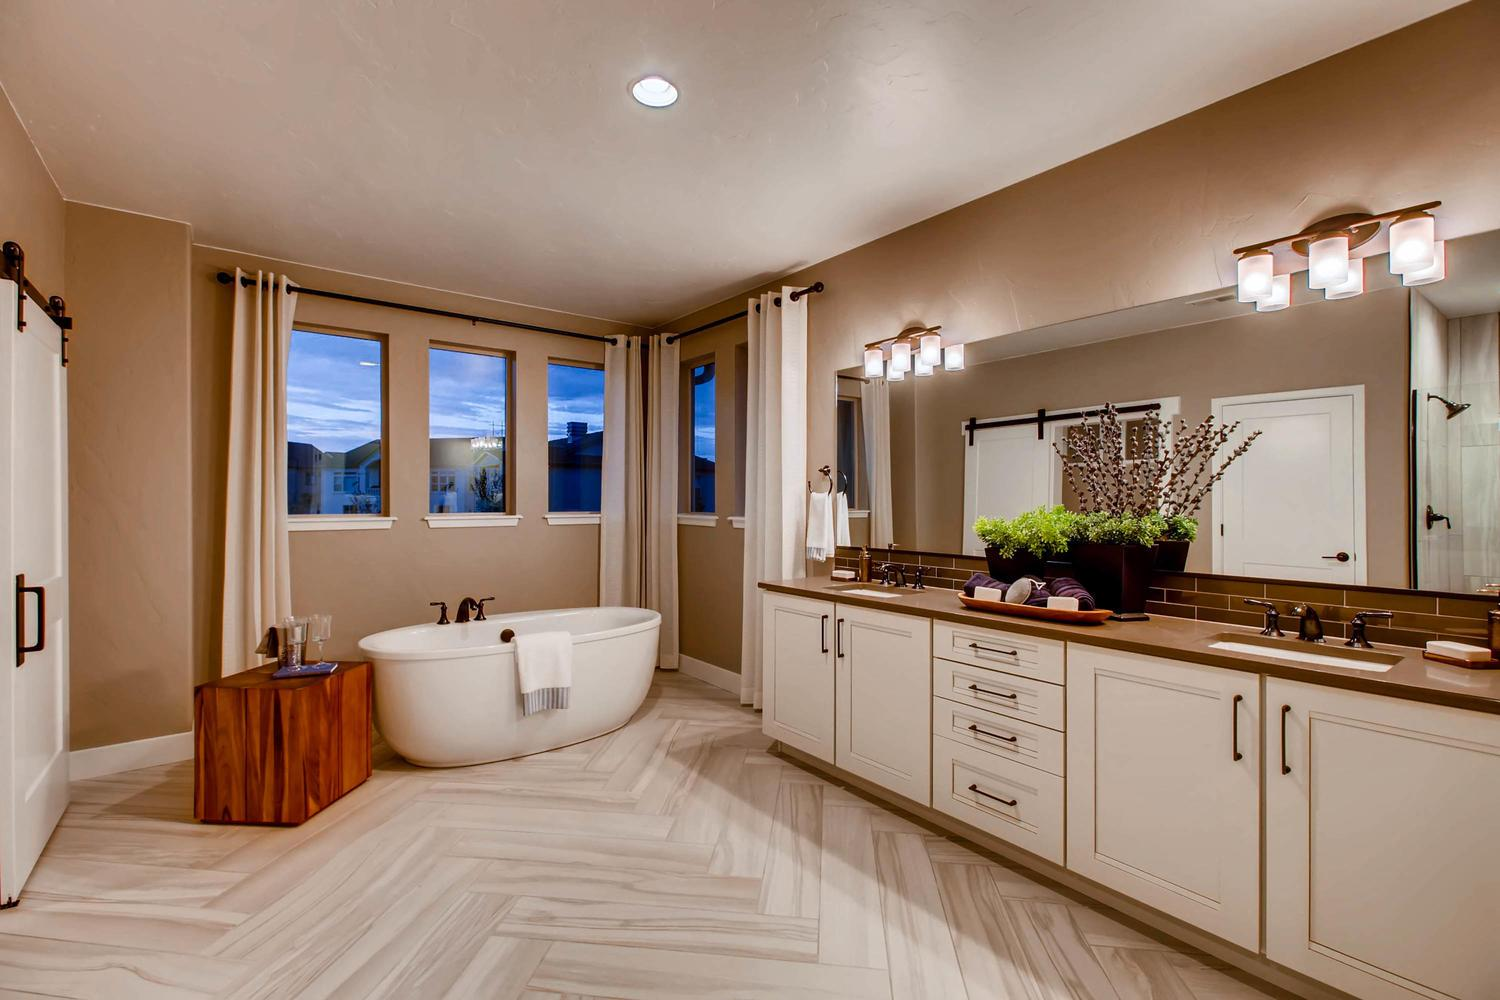 Bathroom featured in the Grand Mesa By Classic Homes in Colorado Springs, CO